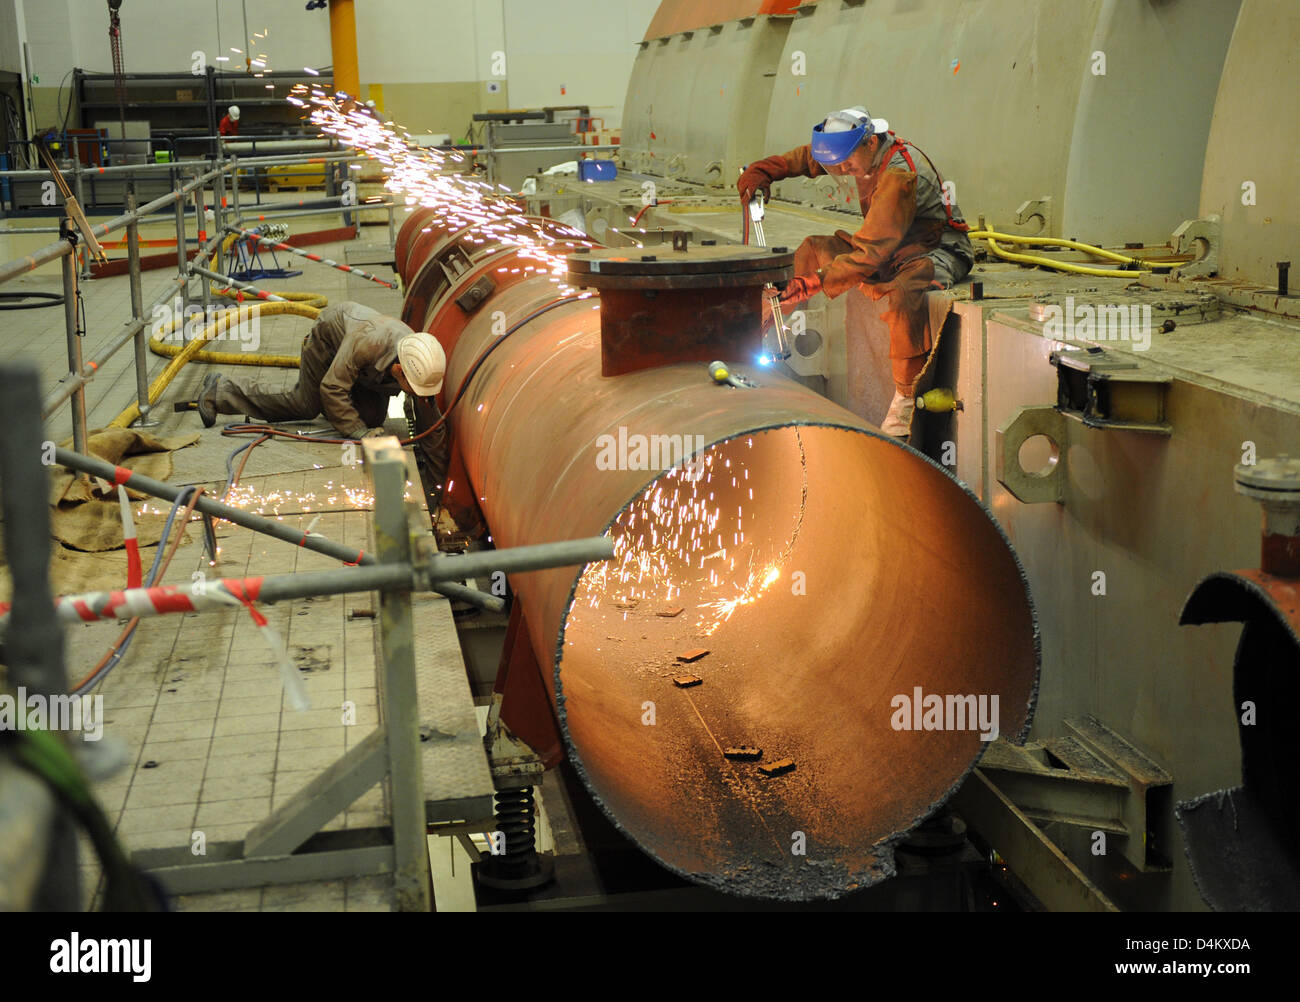 Workers dismantlwe copper pipes in the turbine house of the former atomic power plant in Obrigheim, Germany, 20 Stock Photo